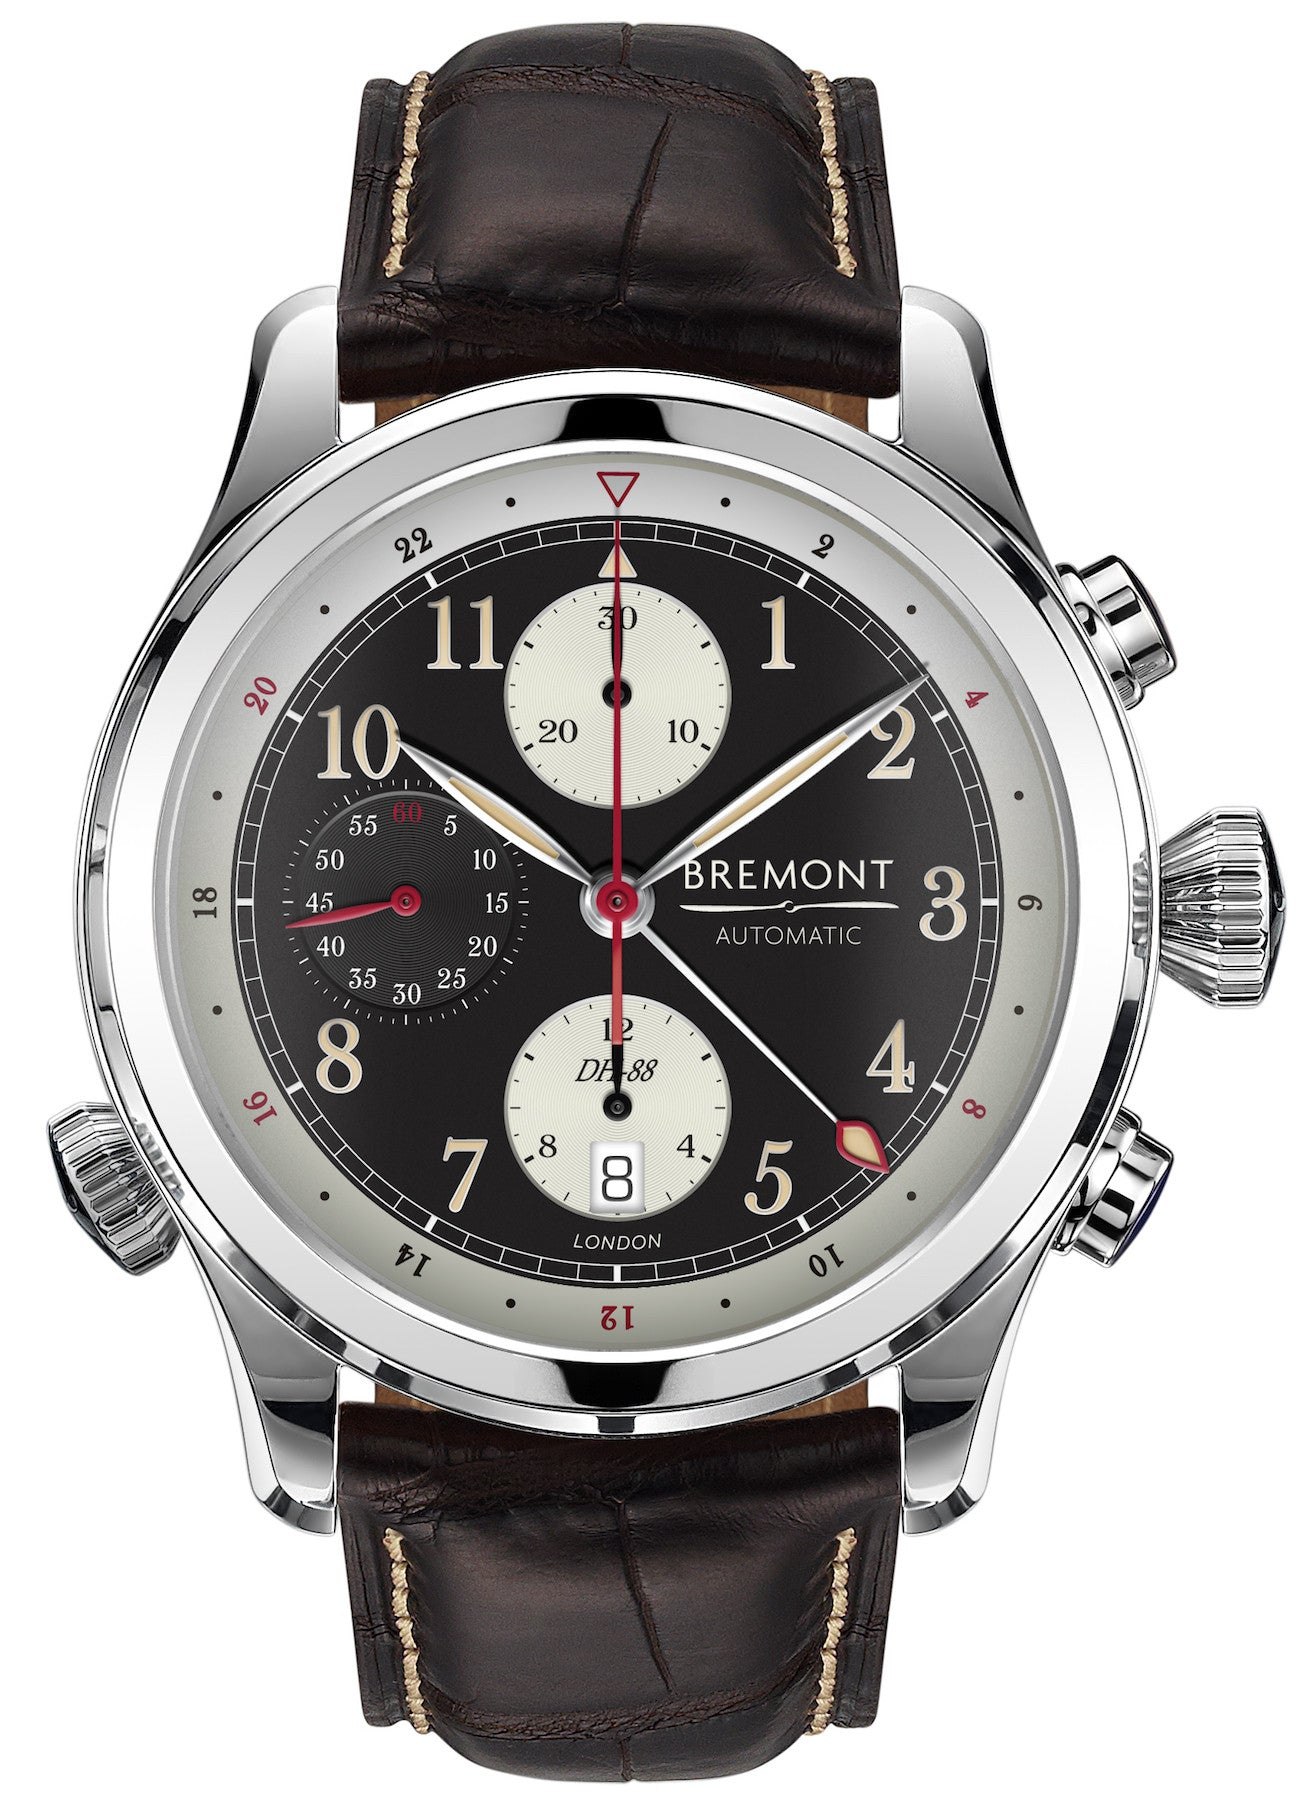 Bremont Watch DH-88 Steel Limited Edition Pre-Order